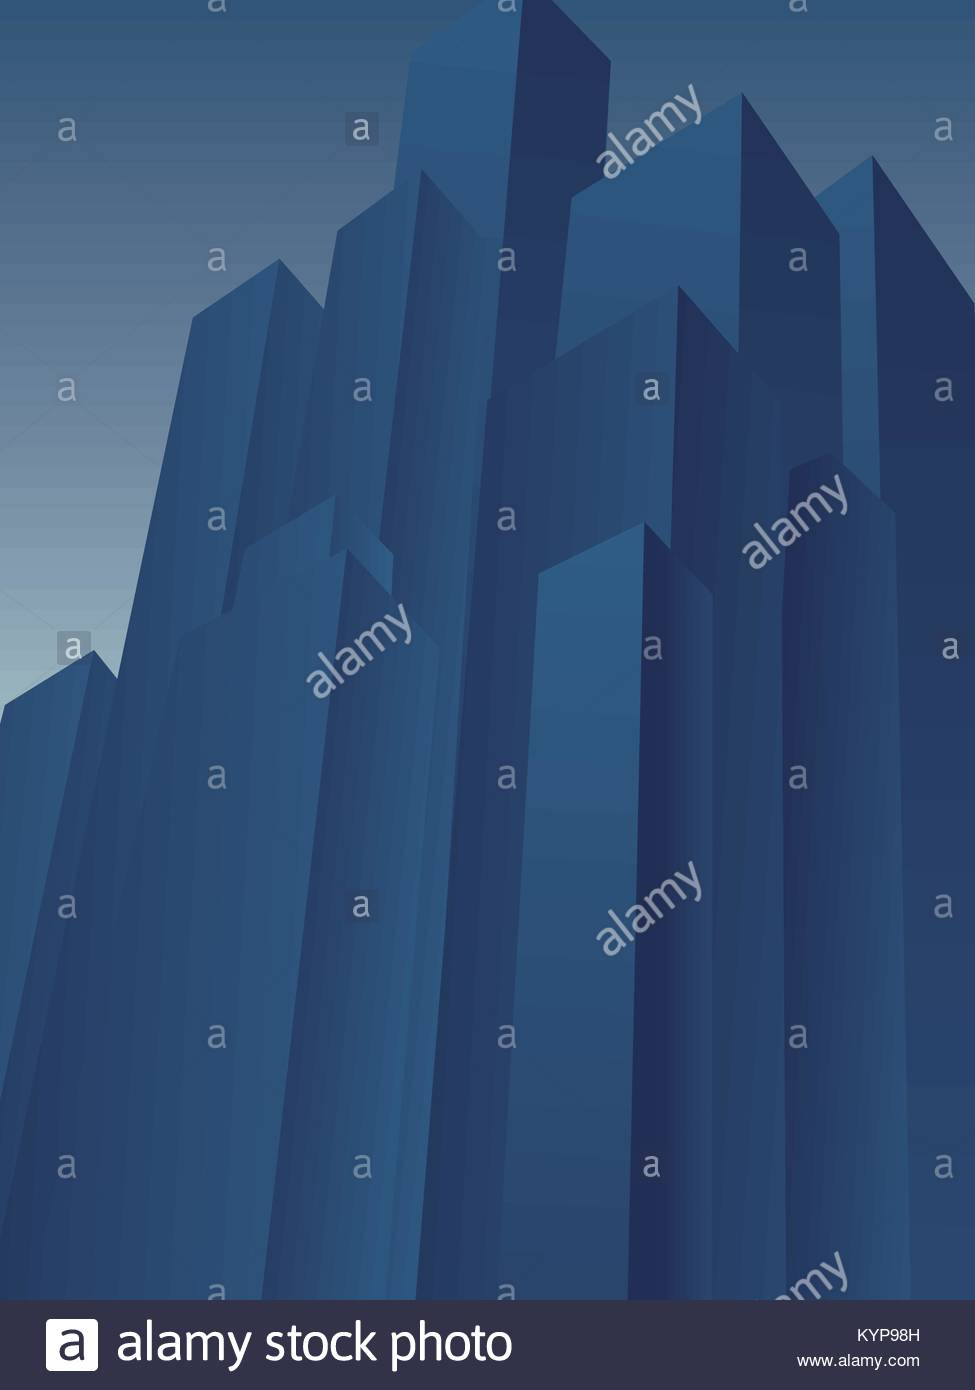 Huge high rise skyscraper district vector background. Symbol of corporation, moguls, tycoons, evil, corrupt, negative - Stock Vector